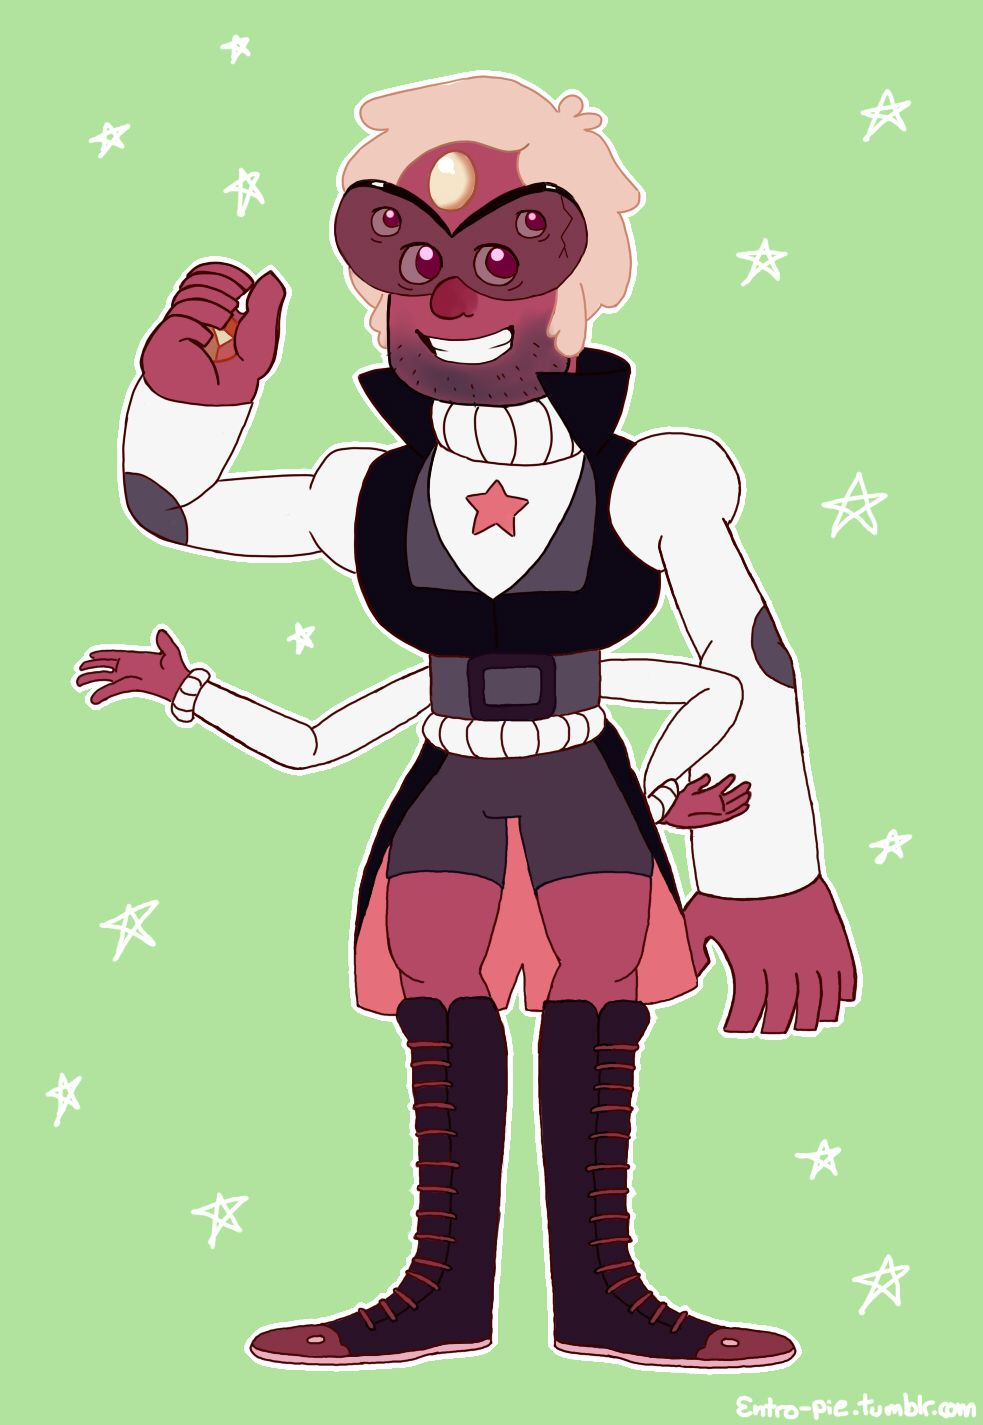 """entro-pie: """"Just for fun I doodled a Sardonyx for merrigel 's crystal pines au. I can just picture Ford telling Dipper to stop crying about fusing with his hero. :P """""""